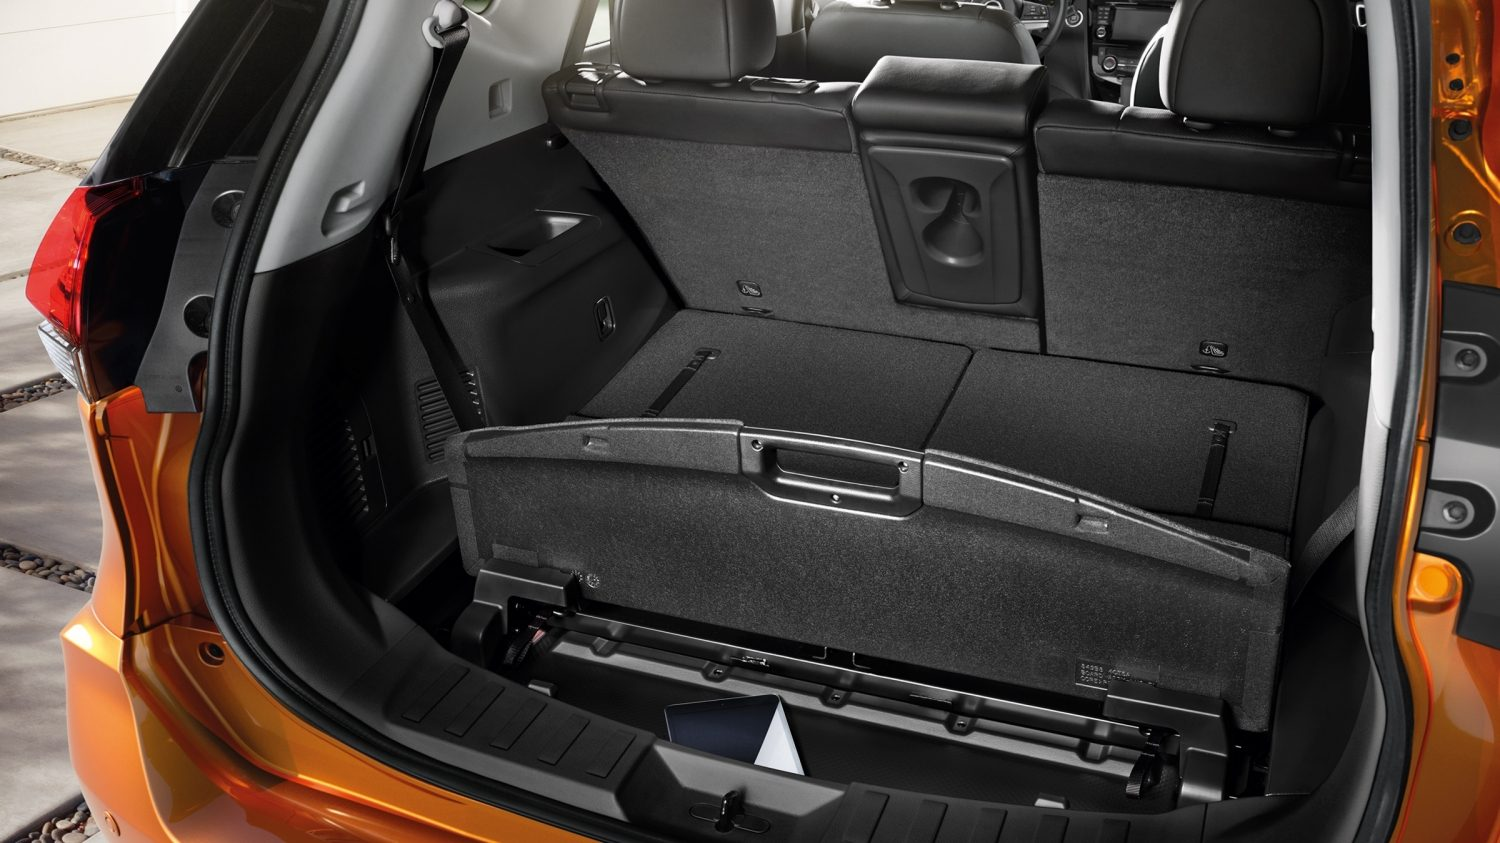 Nissan X Trail Boot Space - Car Reviews 2018